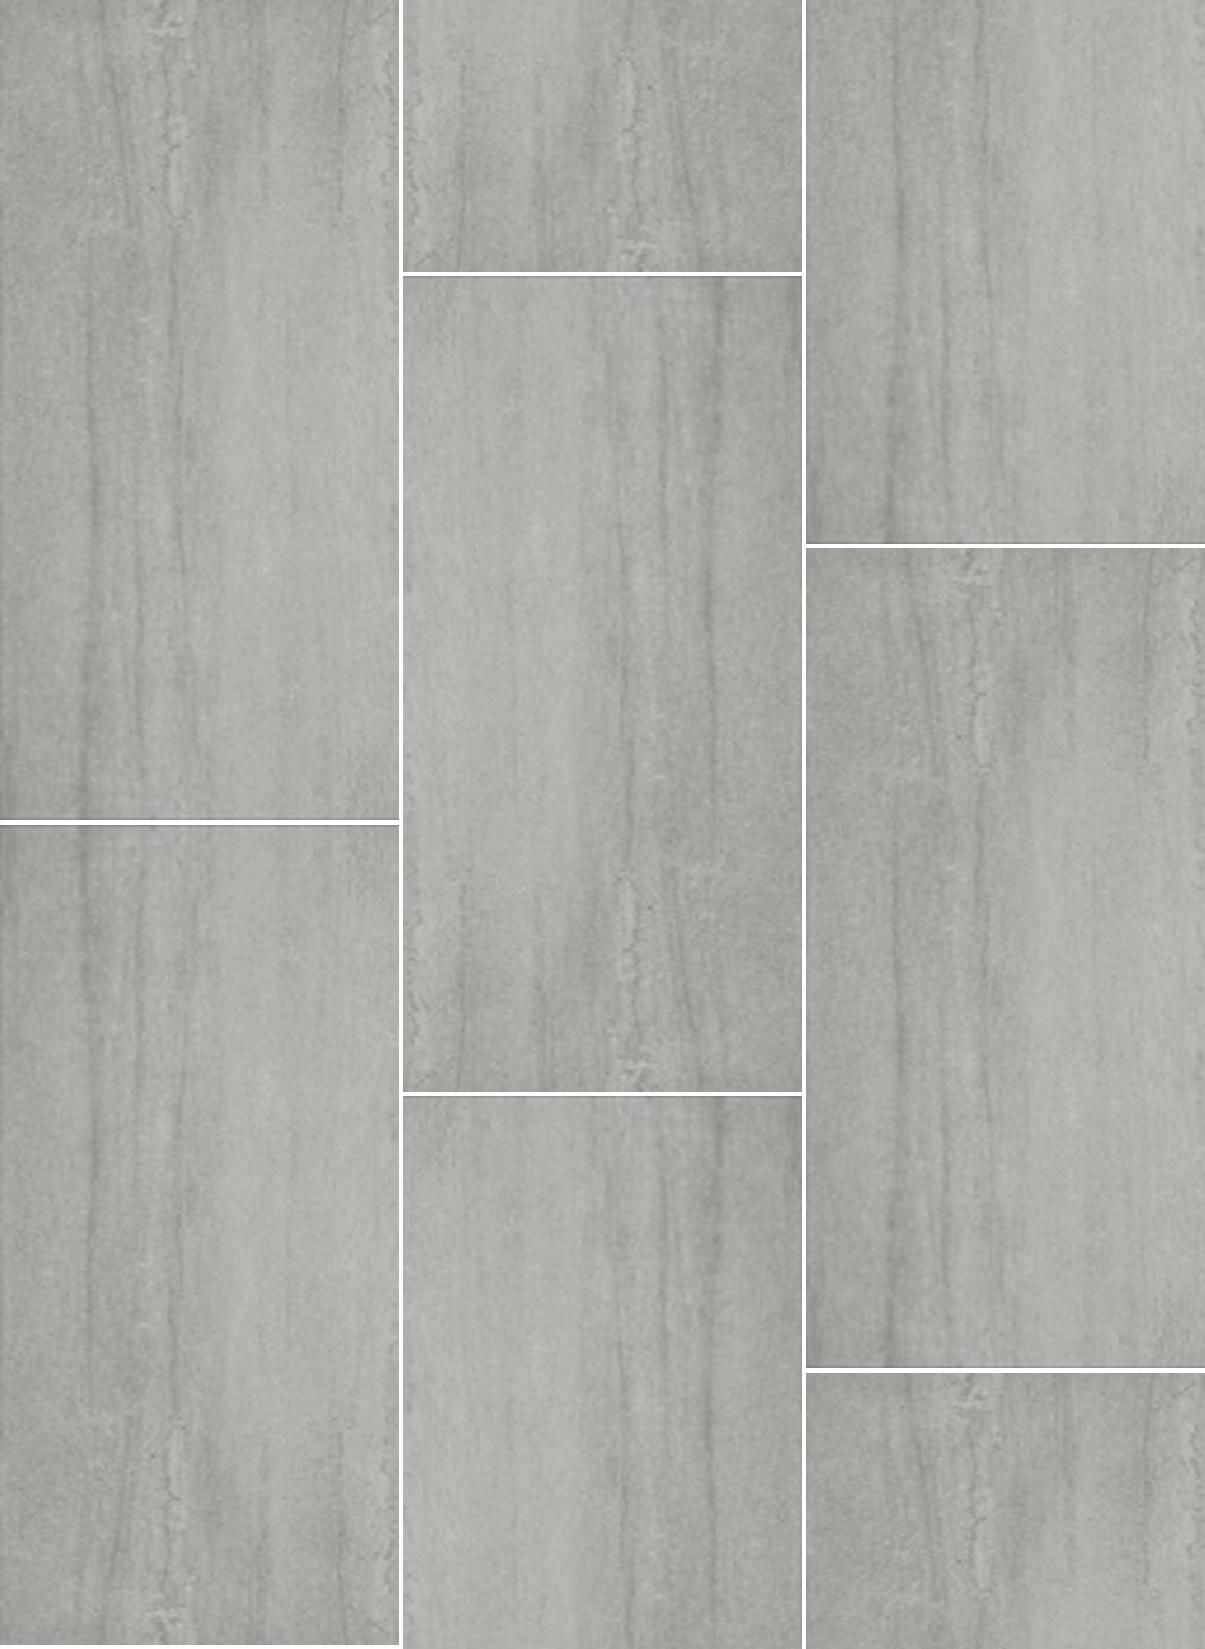 Pics for grey floor tiles texture kitchen pinterest nick miller gray and grey floor tiles - Textuur tiling ...